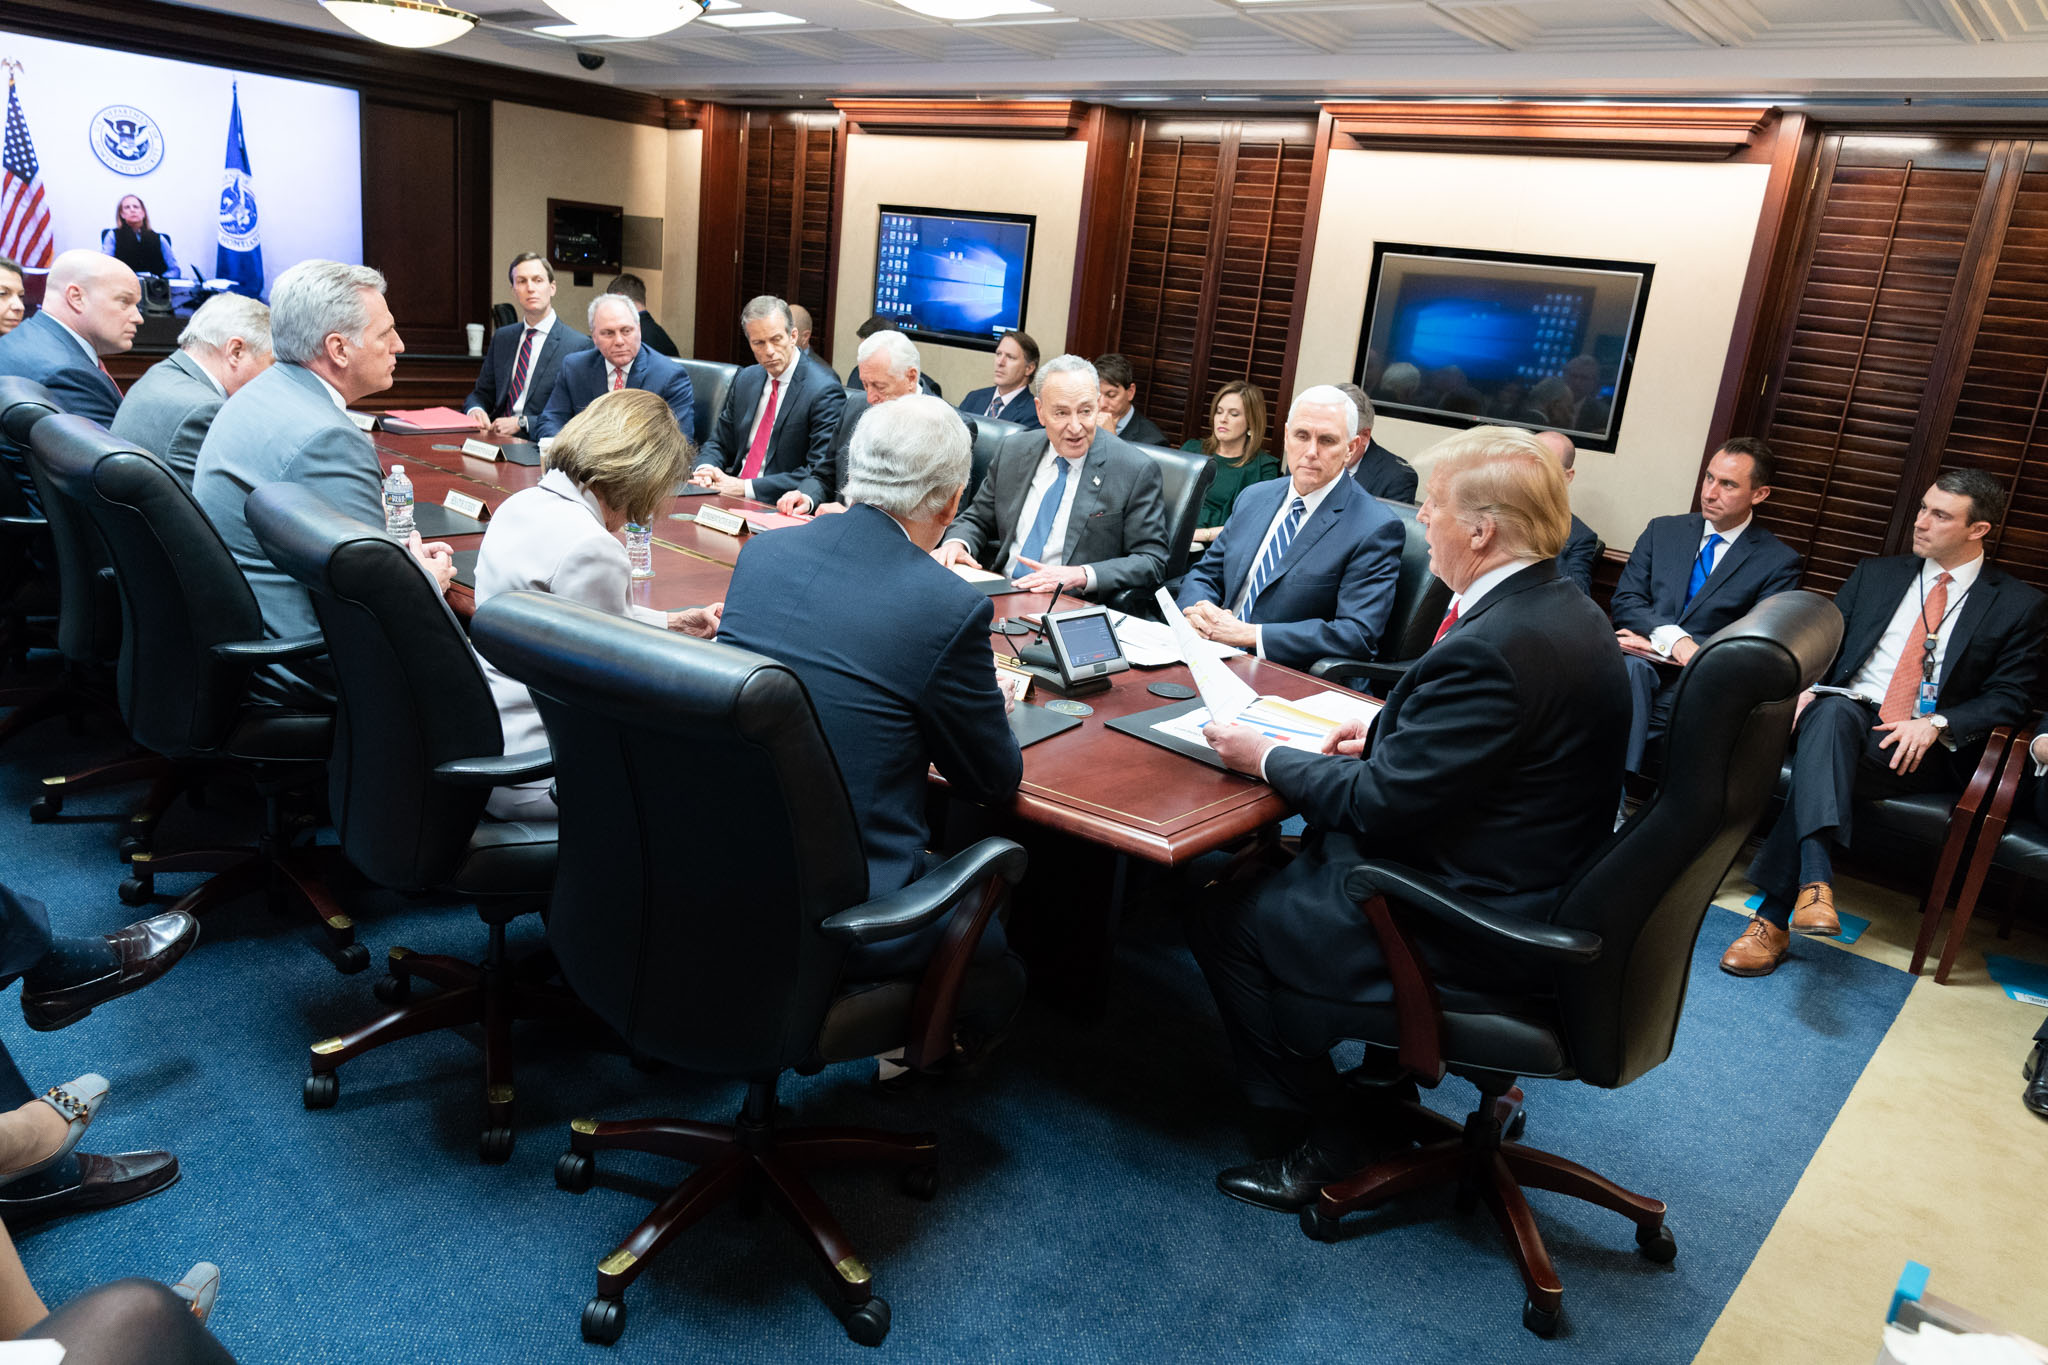 President Donald Trump and Vice President Mike Pence meet with Republican and Democratic congressional leadership on Wednesday, Jan. 2, 2019, in the Situation Room of the White House.